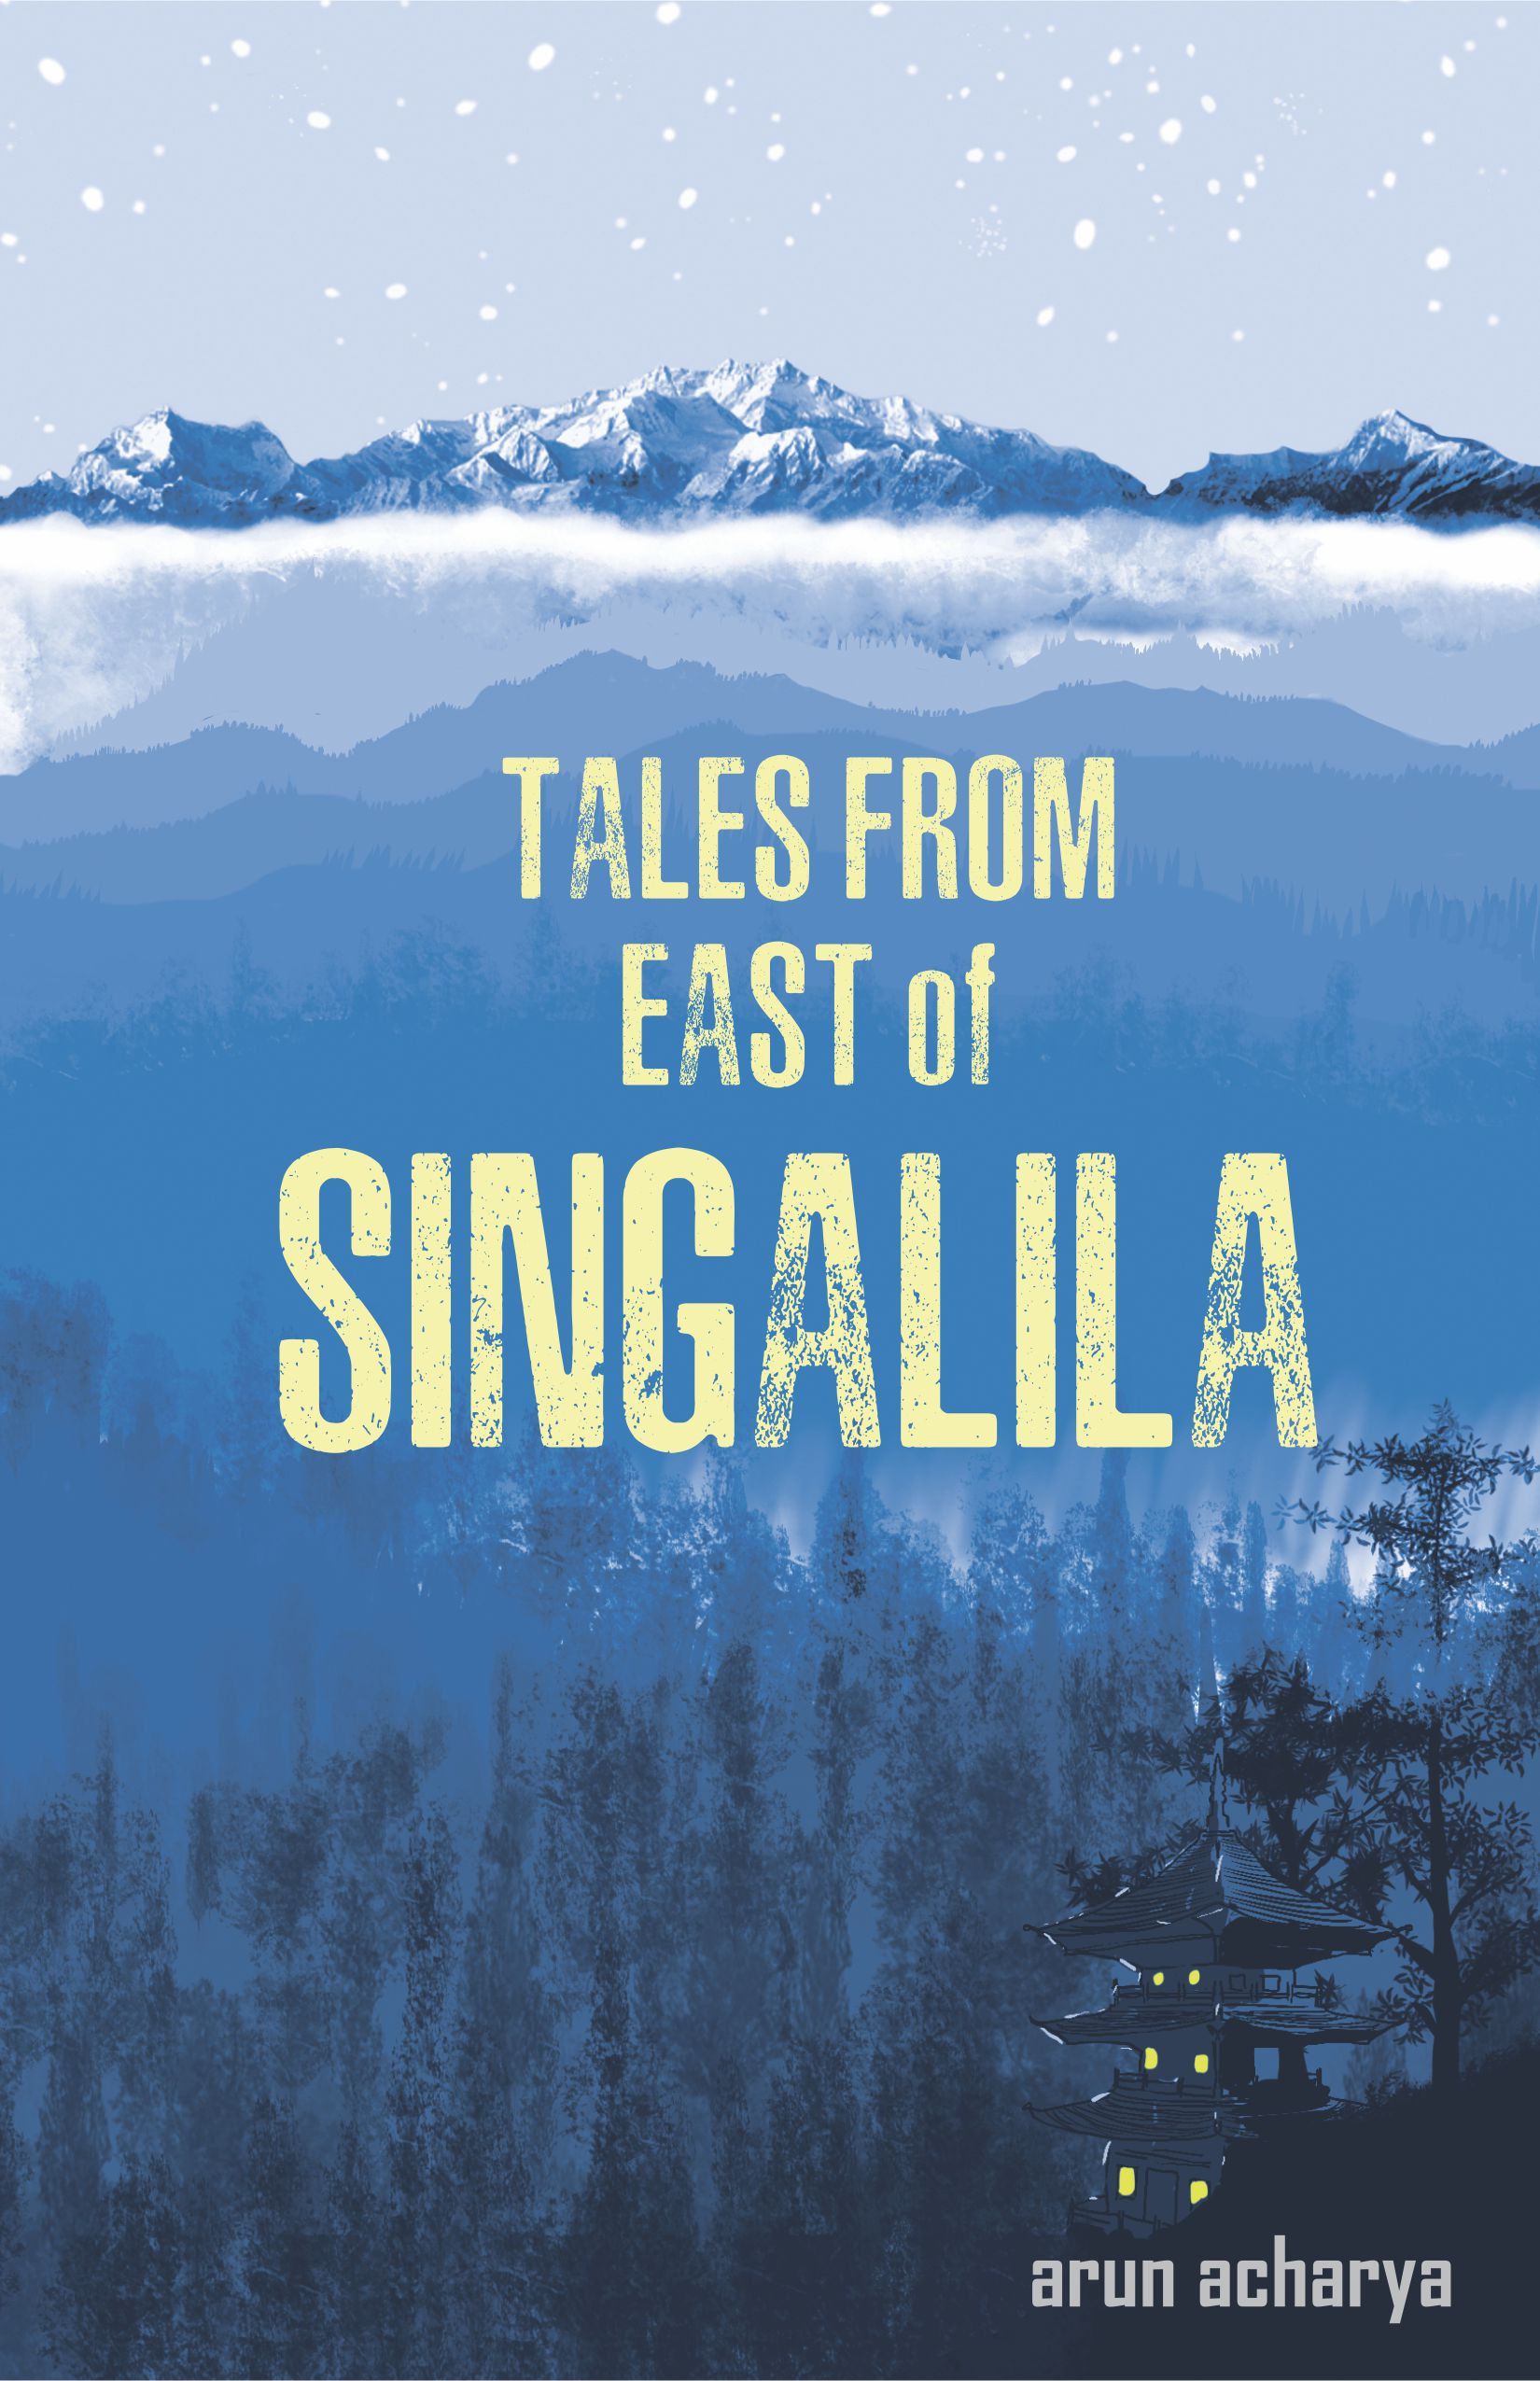 Tales From The East Of Singalila